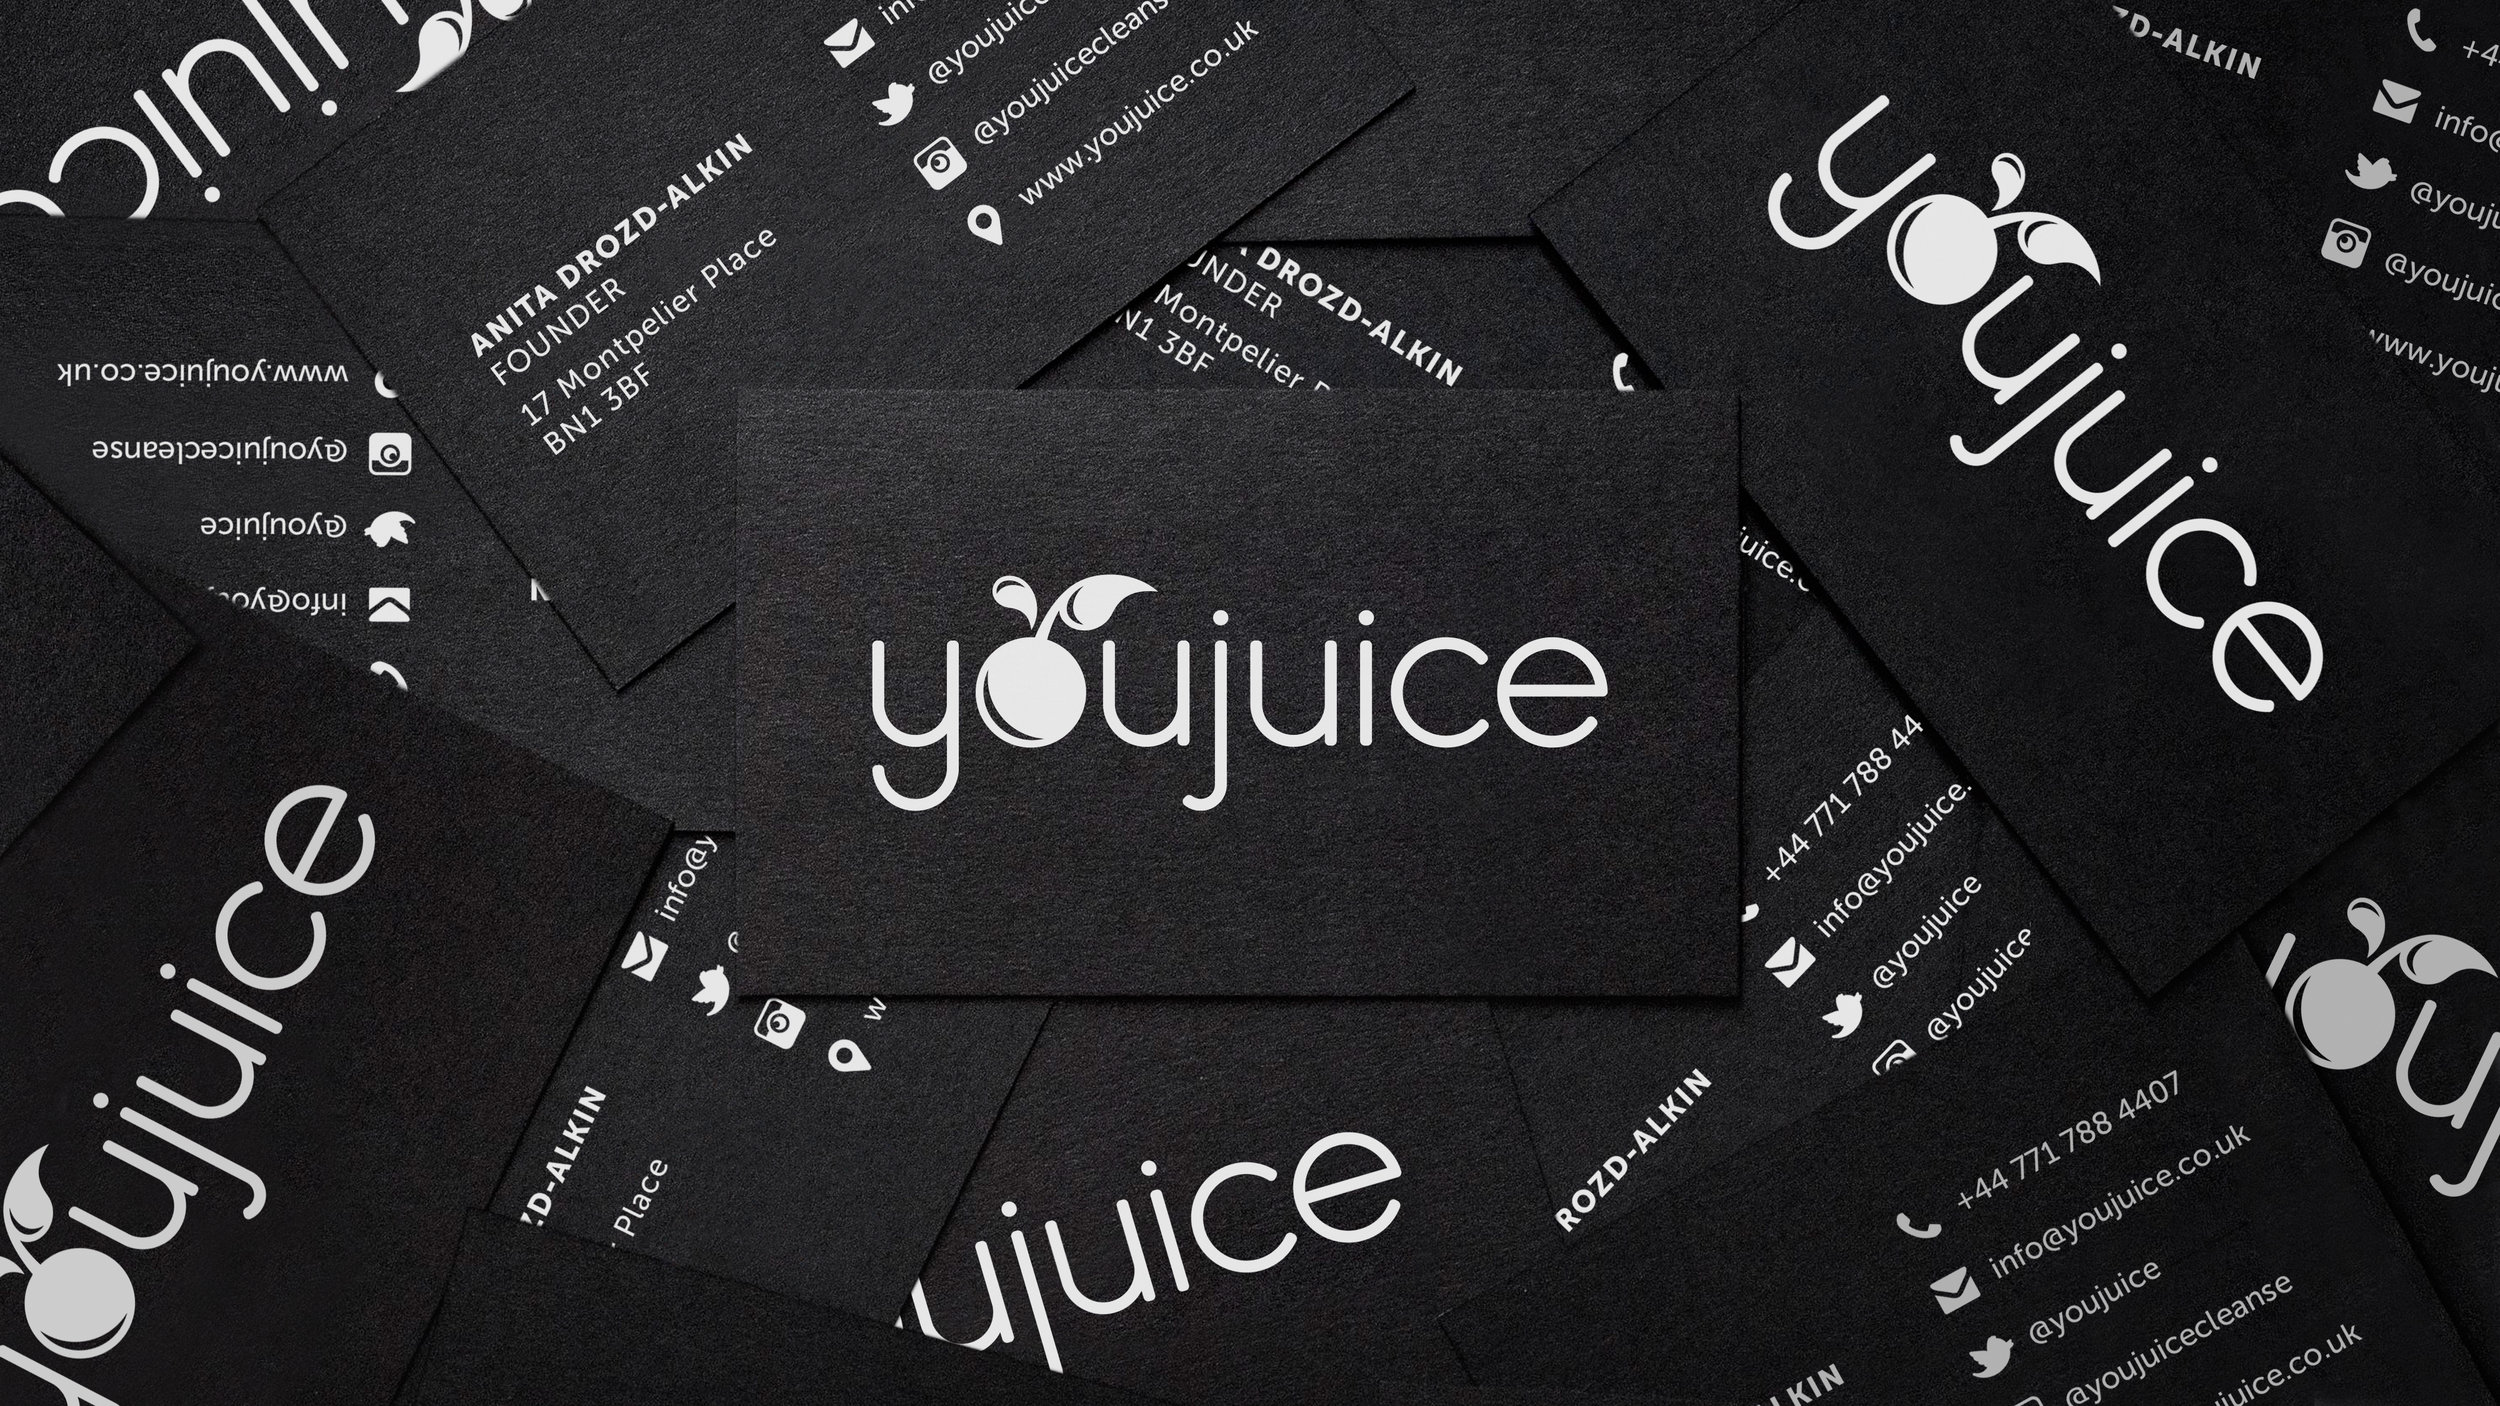 Brand_republica_logo_design_youjuice_business_cards.jpg